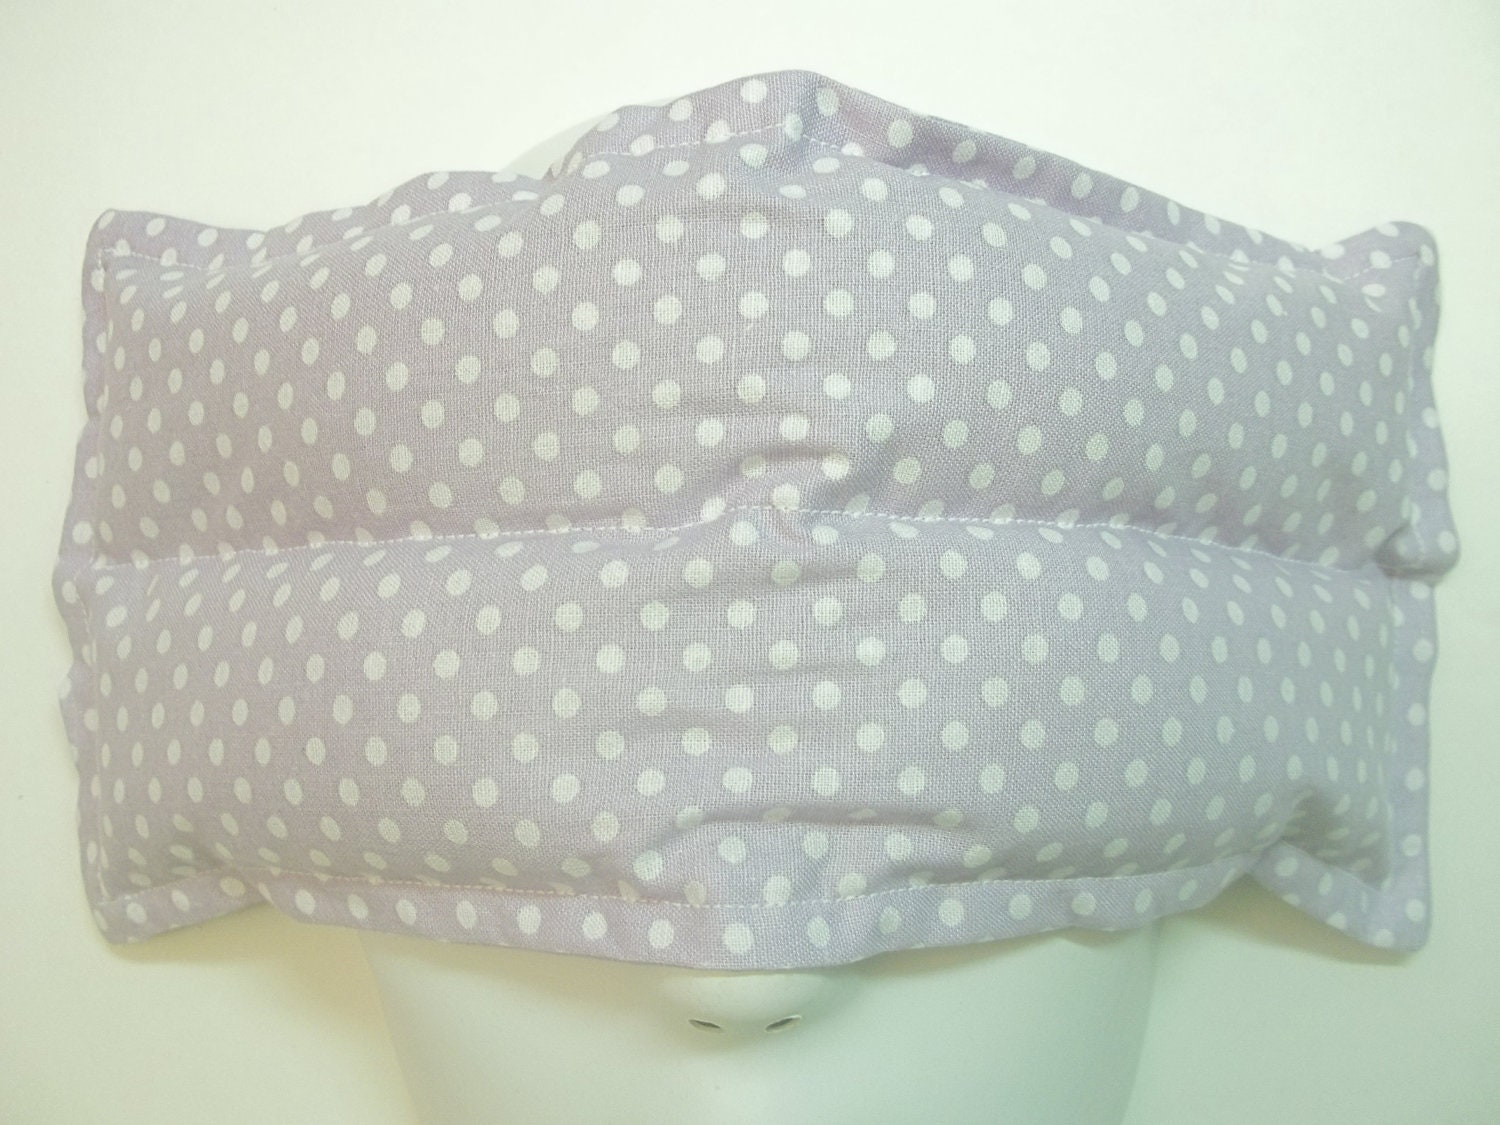 Herbal Scented Animal Eye Pillows : Herbal Hot/Cold Aromatherapy Therapy Eye Pillow Polka Dots Purple